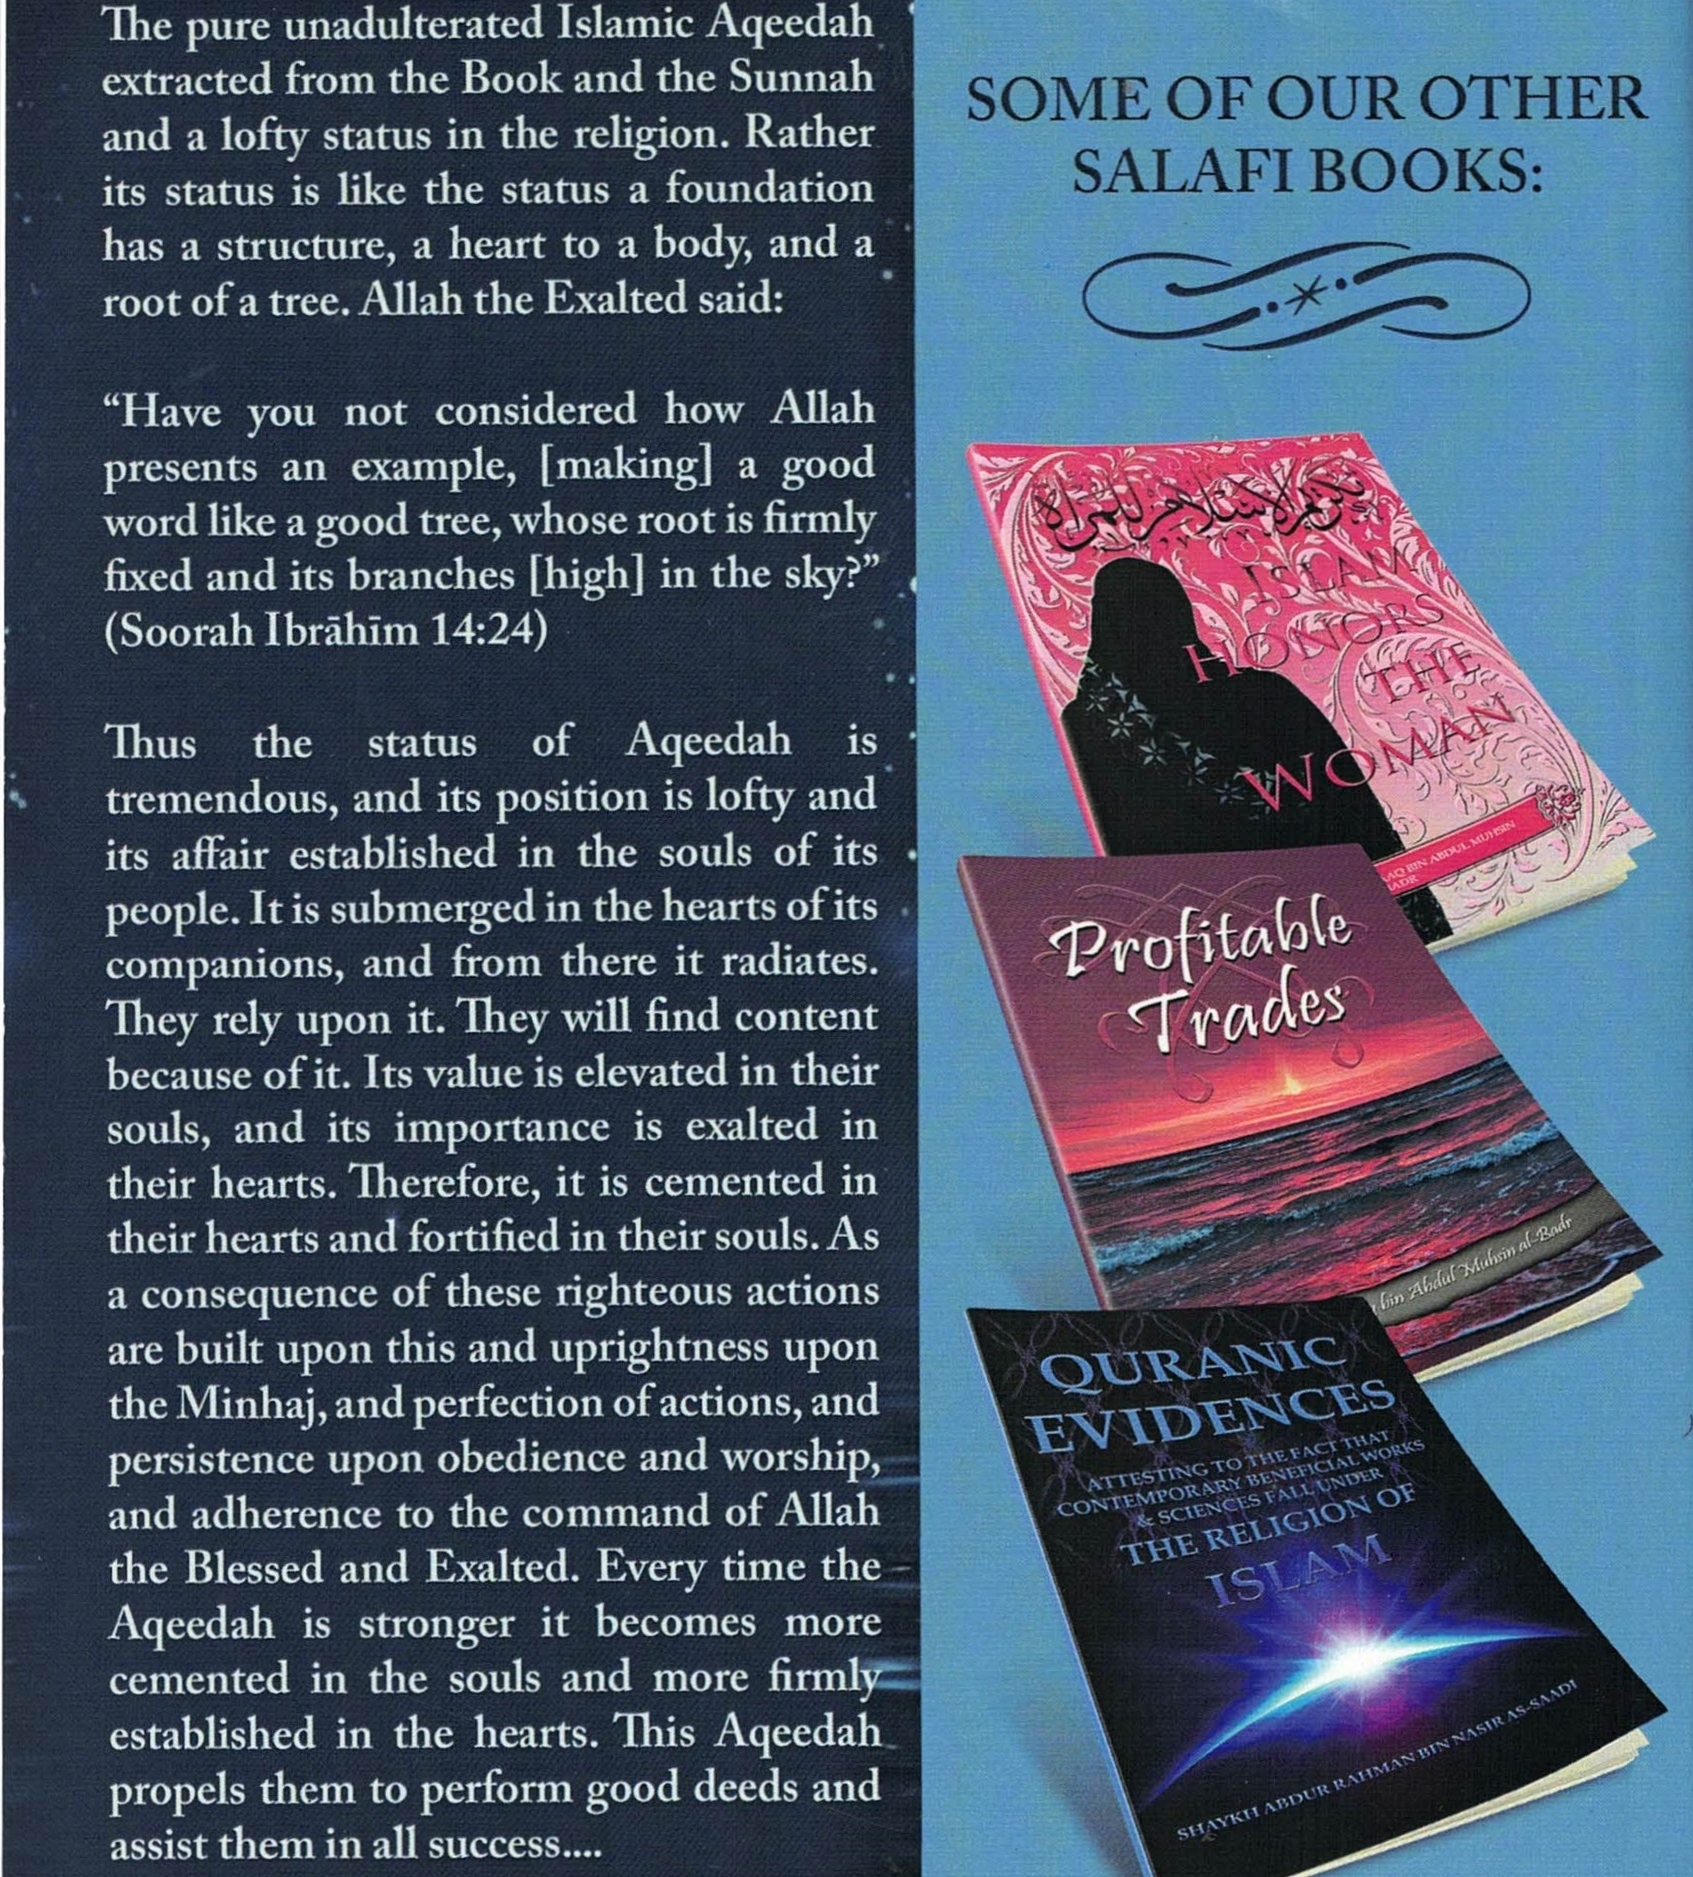 the-stability-of-the-aqeedah-of-the-salaf-its-safty-from-alteration-2-copy.jpg